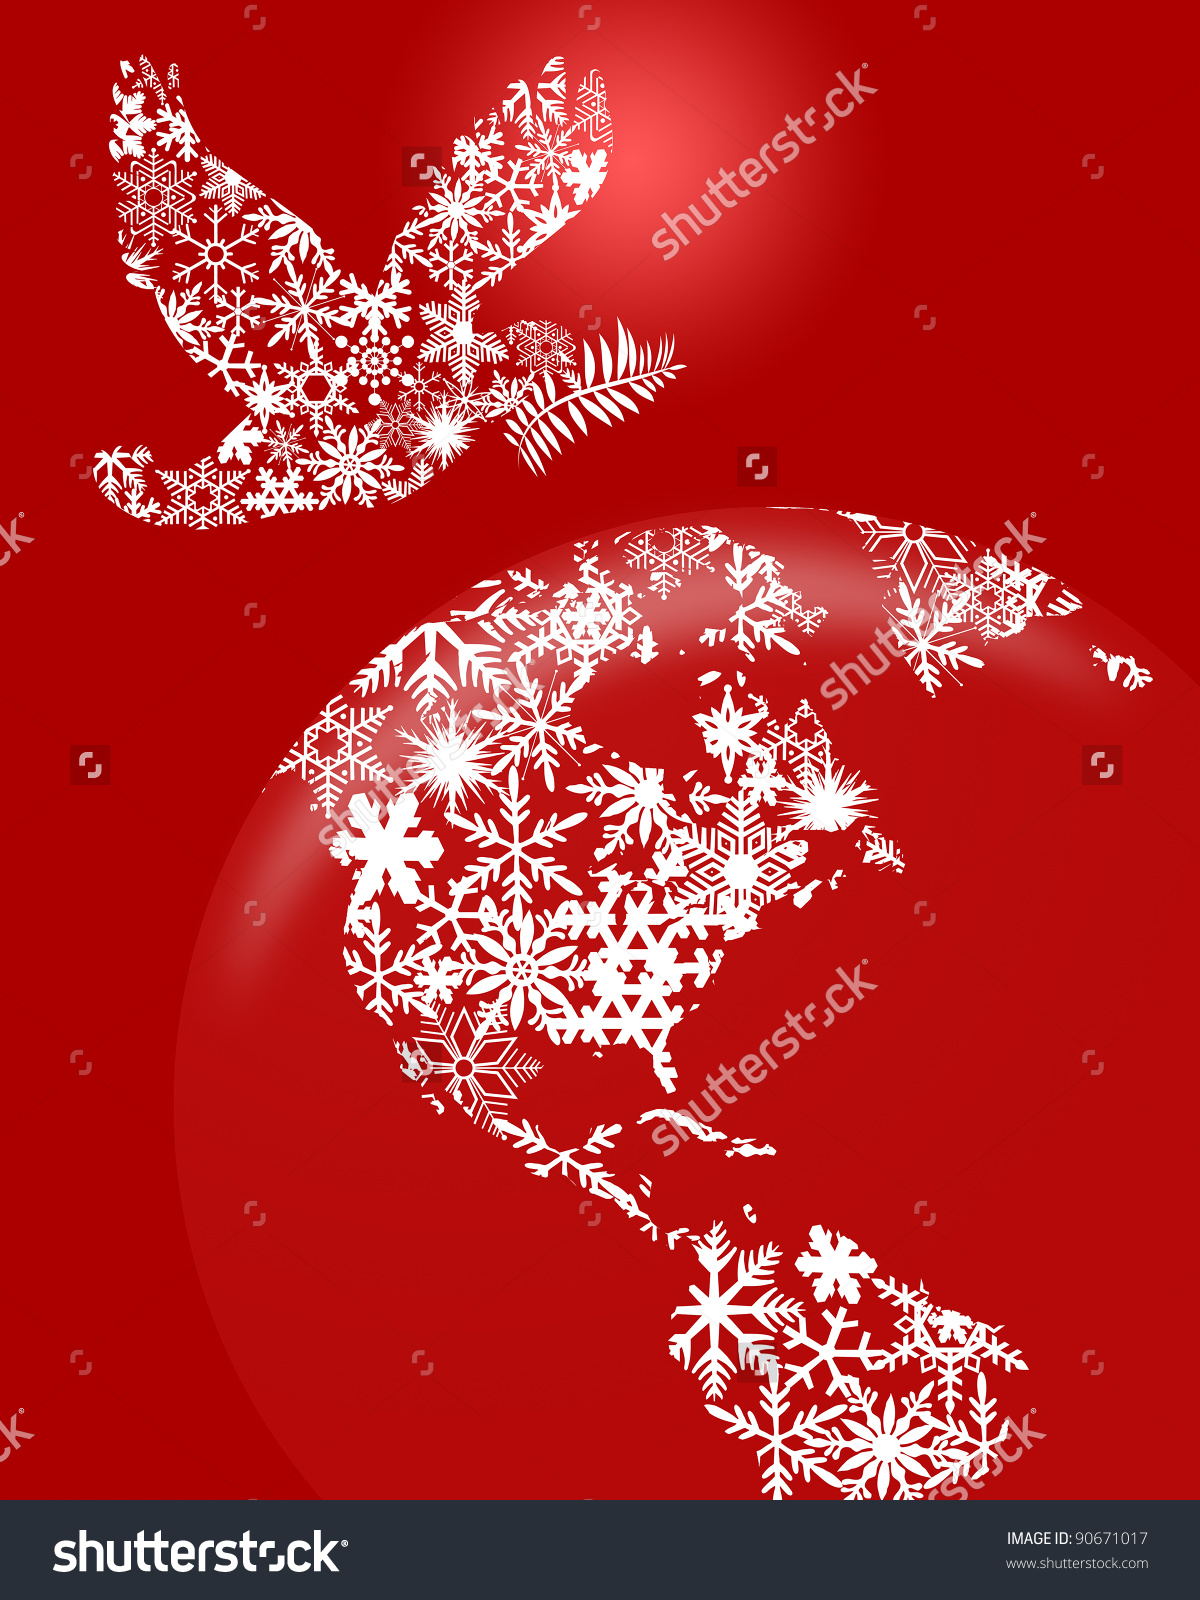 Christmas Peace Dove And Earth Globe Clipart Illustration On Red.